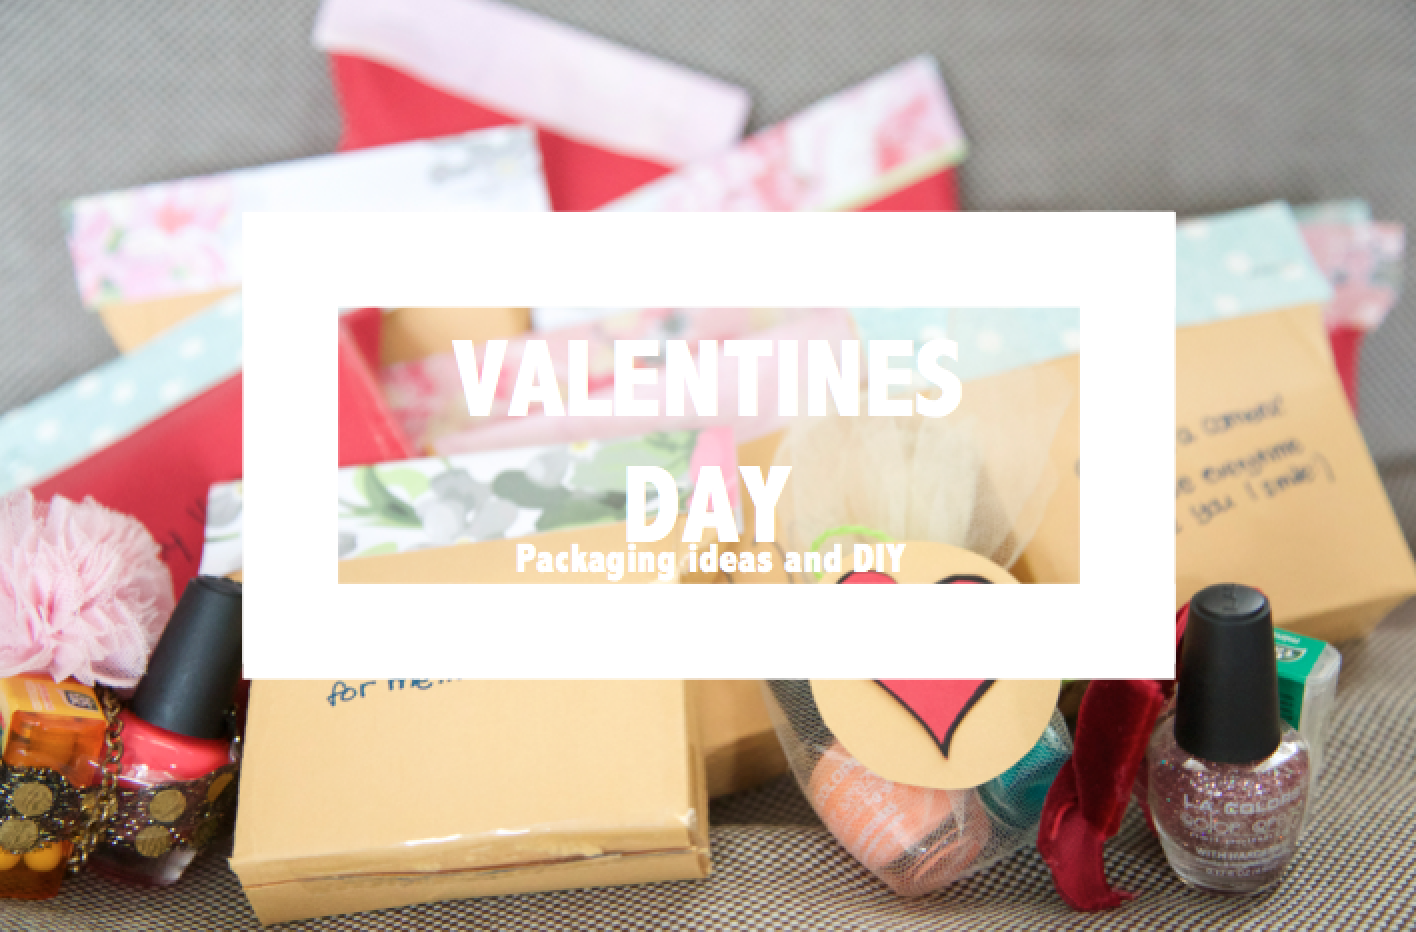 LAST MINUTE Valentines Day Gift Ideas And DIY!!